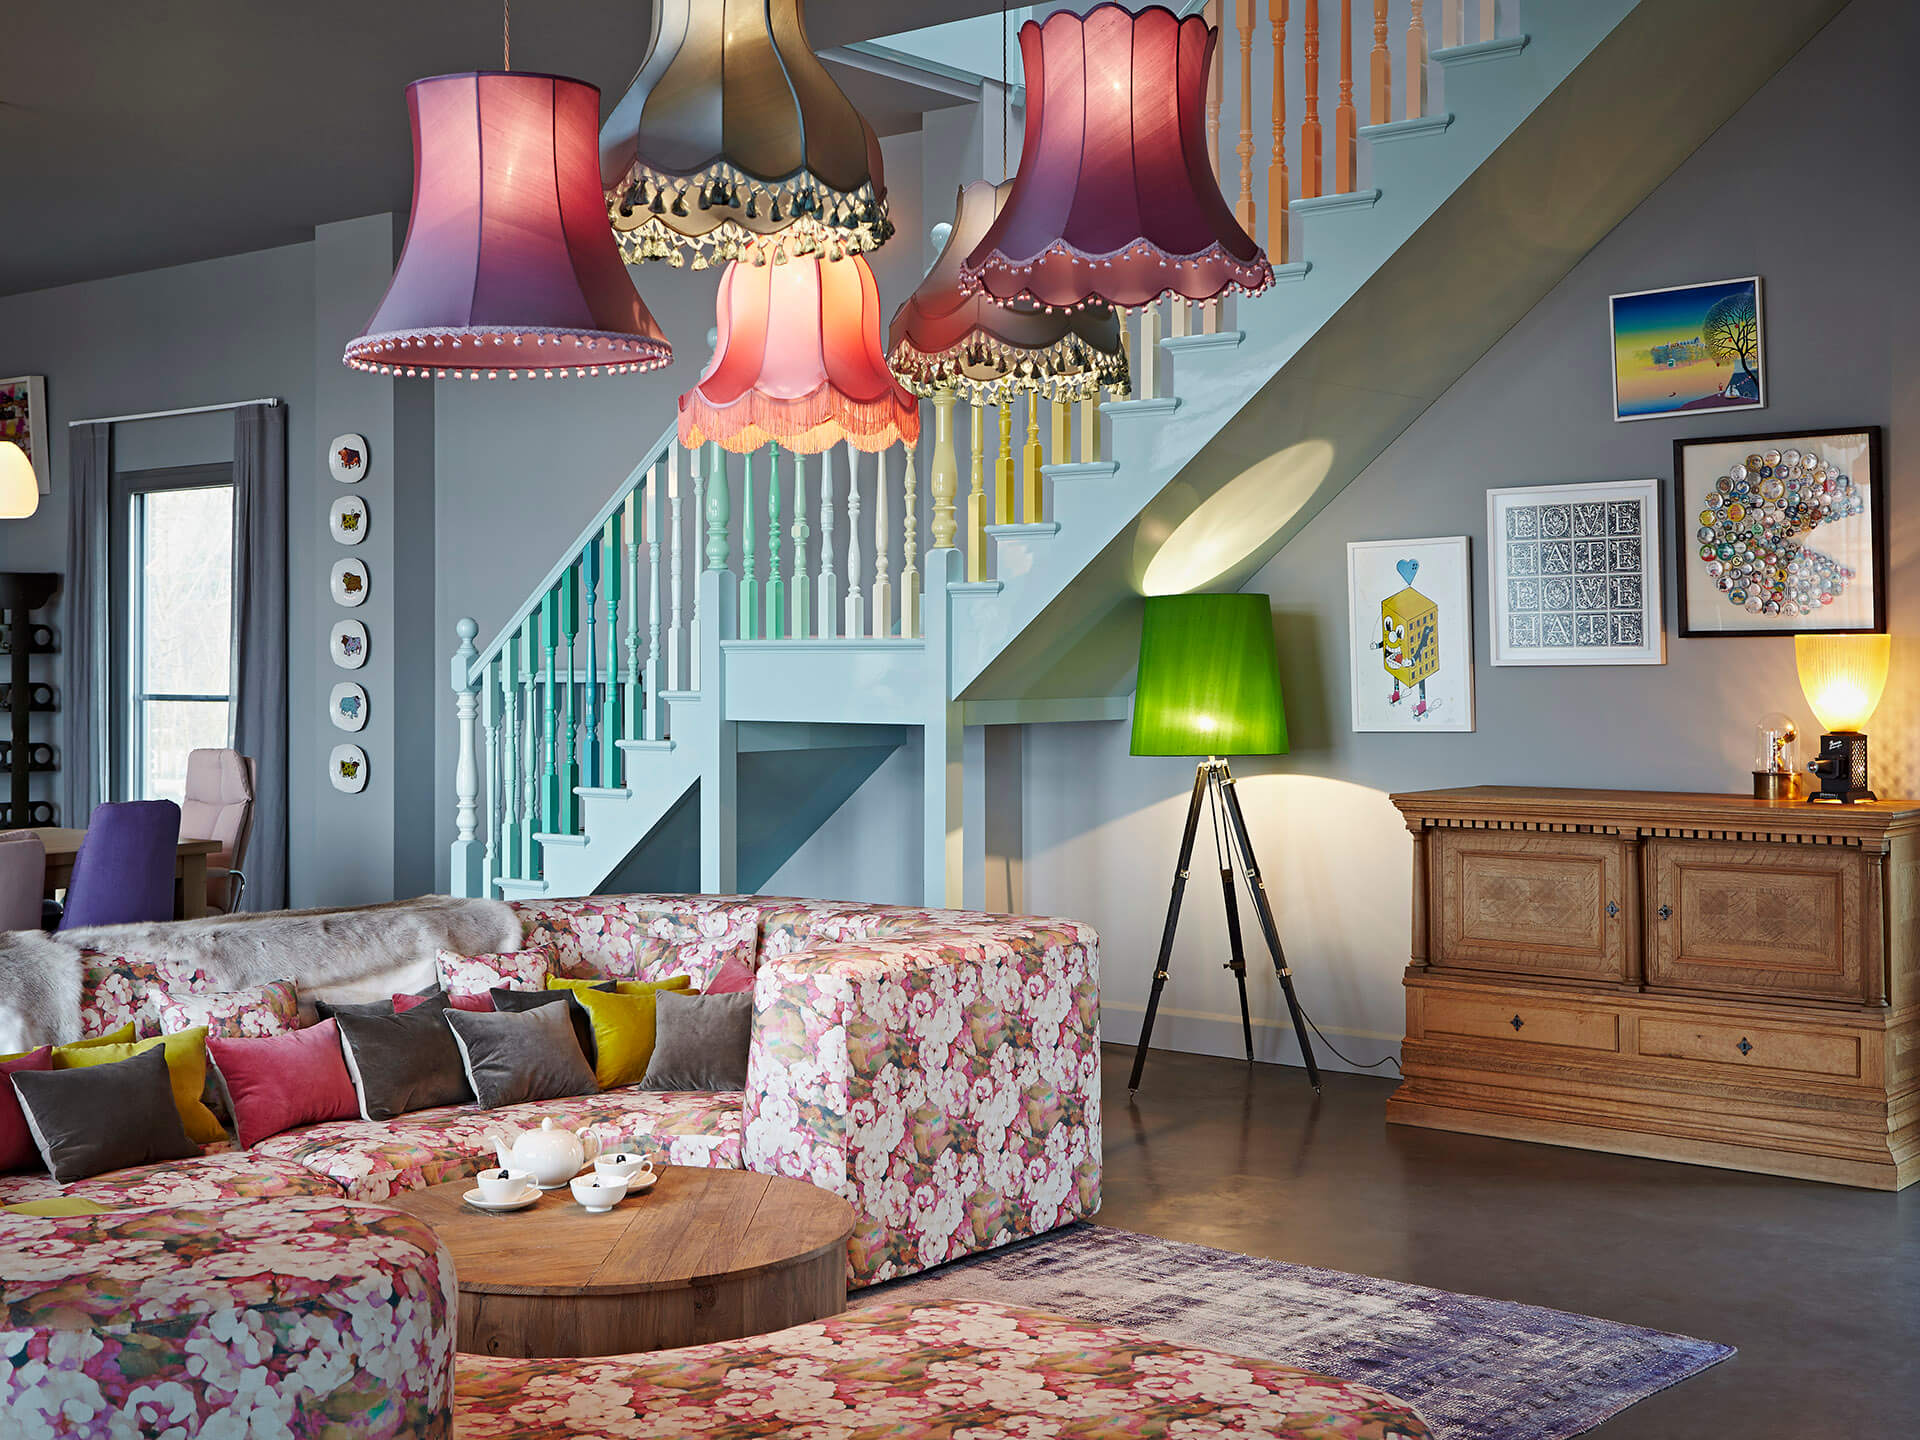 The-Lakes-Living room-staircase-lampshades